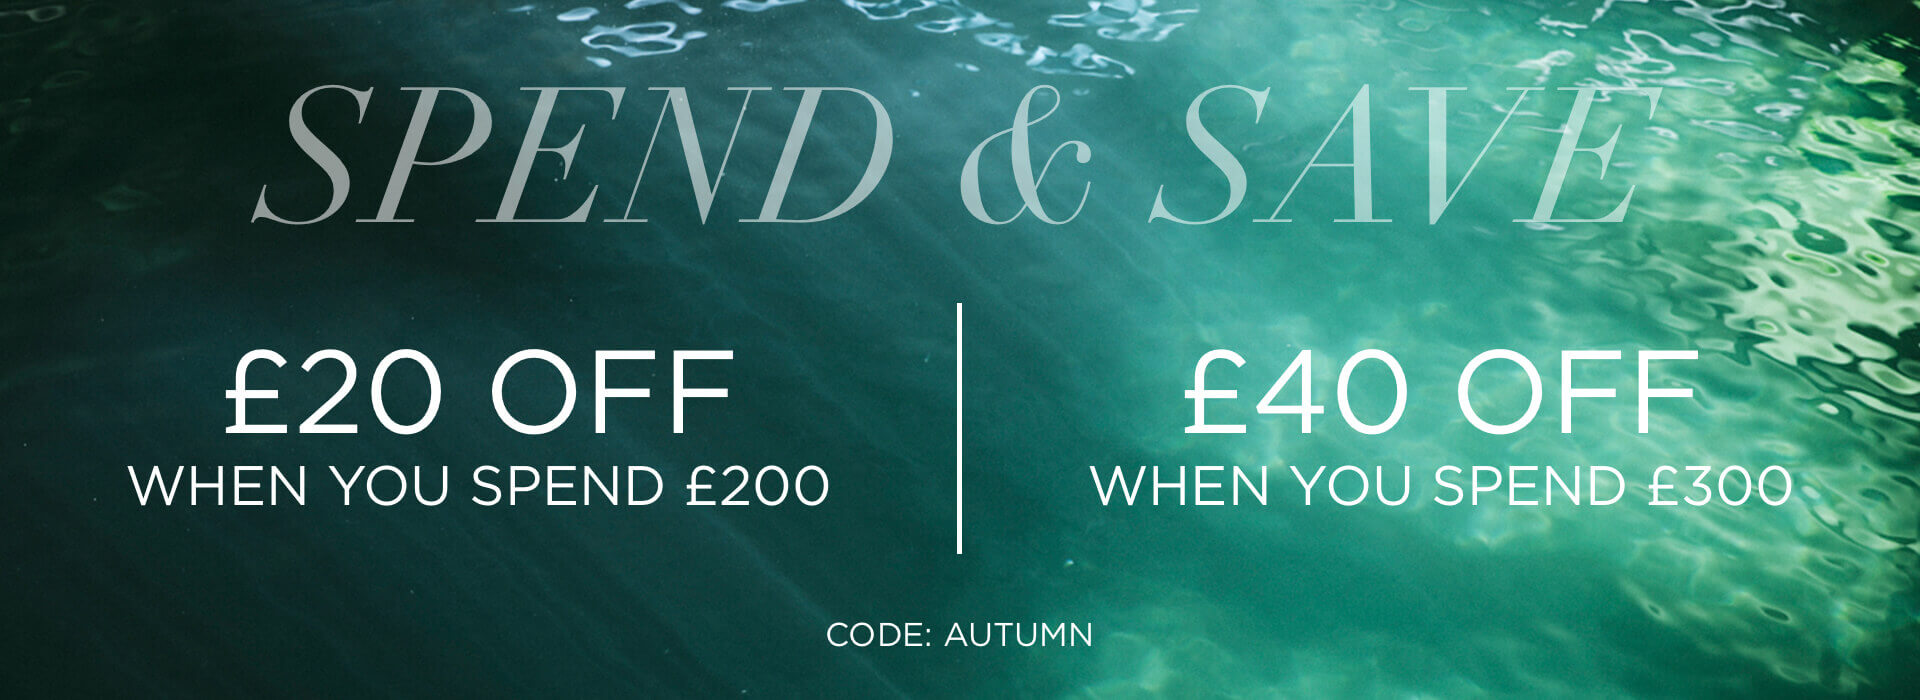 Spend & Save  £20 off when you spend £200, £40 off when you spend £300